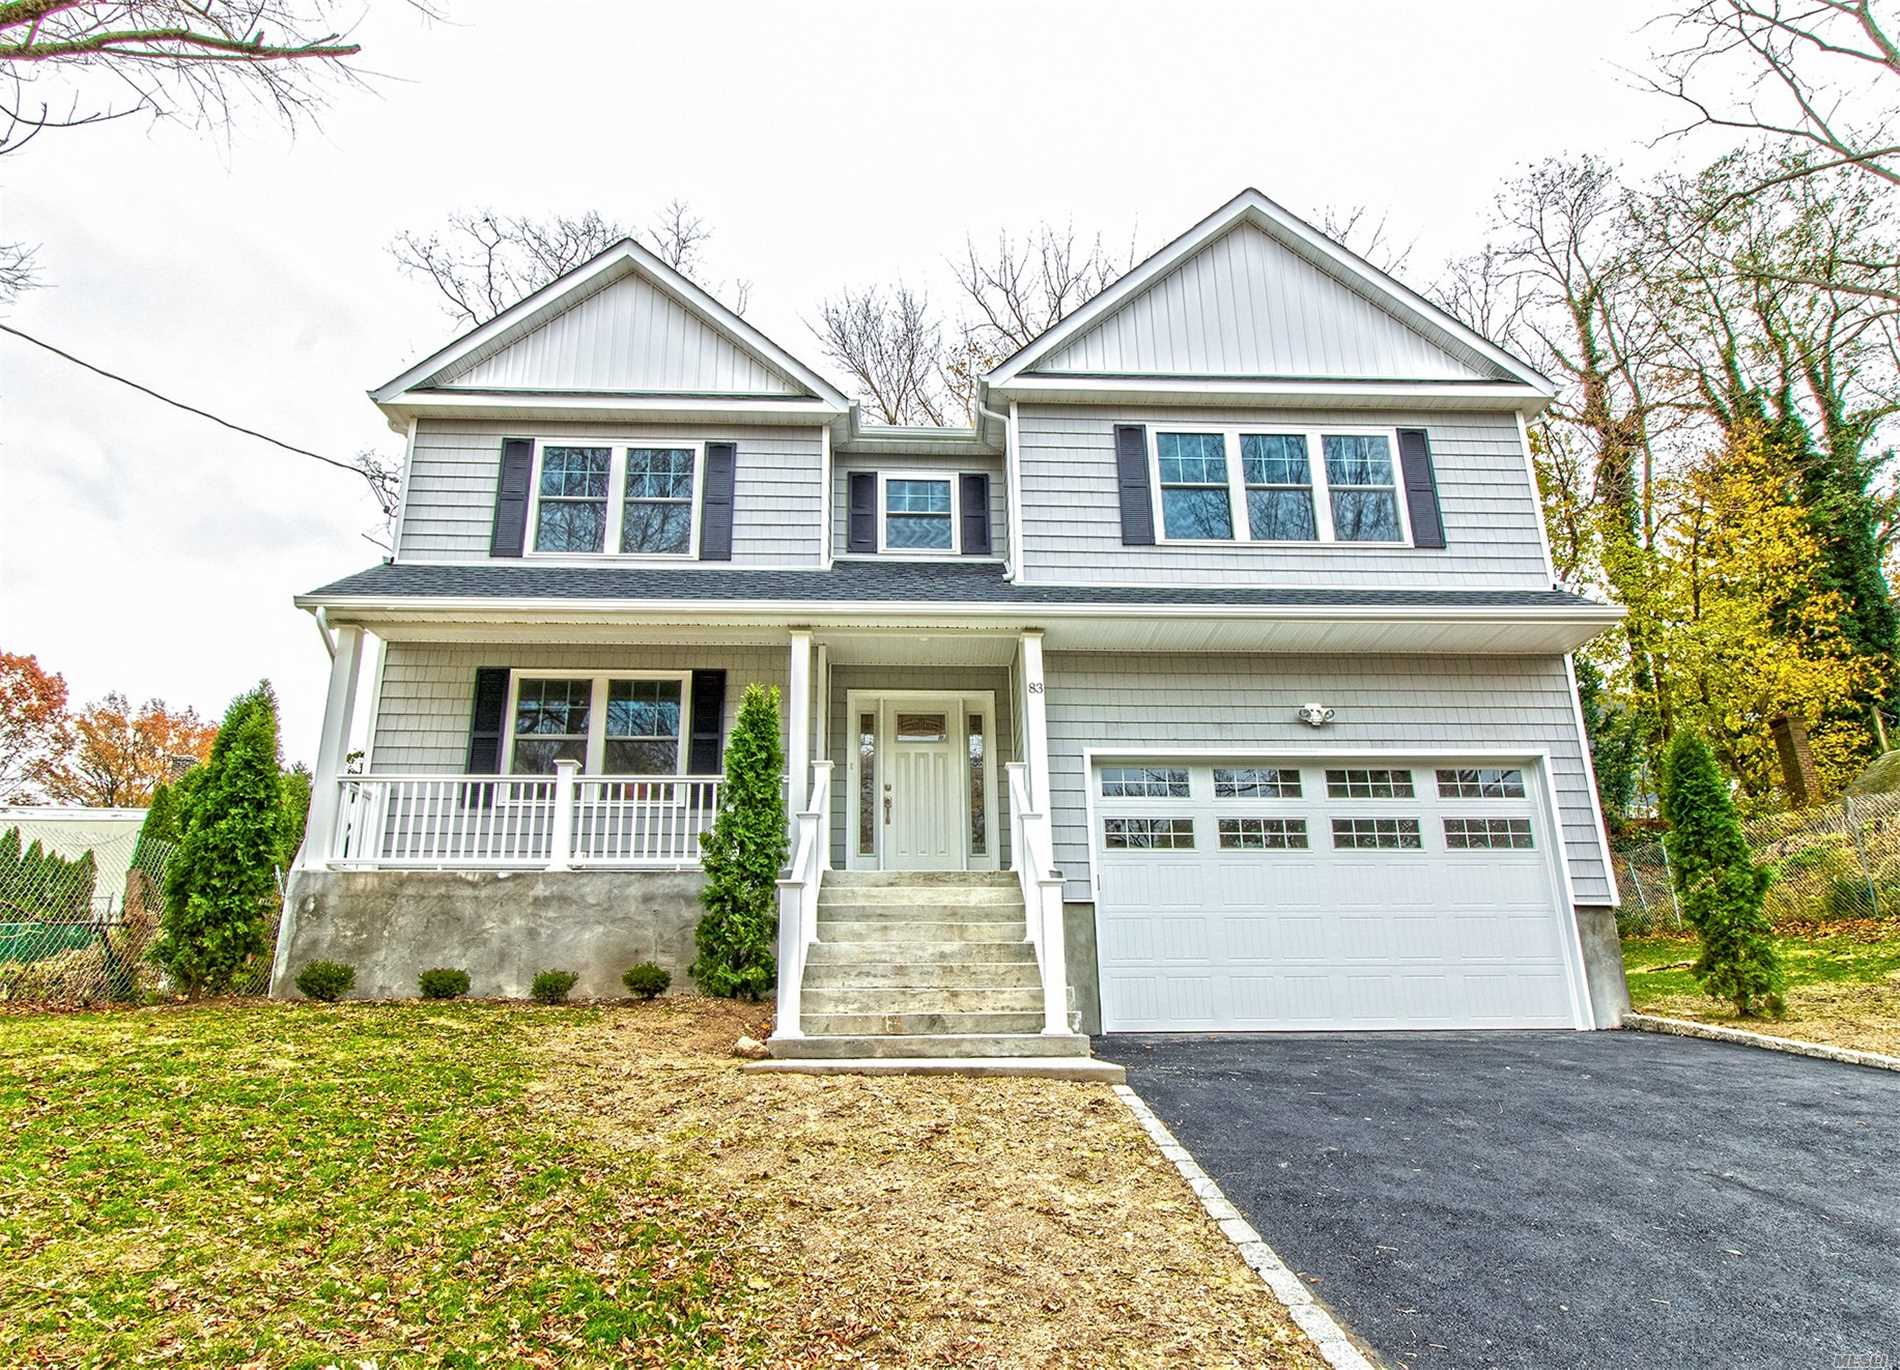 Photo of home for sale at 83 Clement St, Glen Cove NY